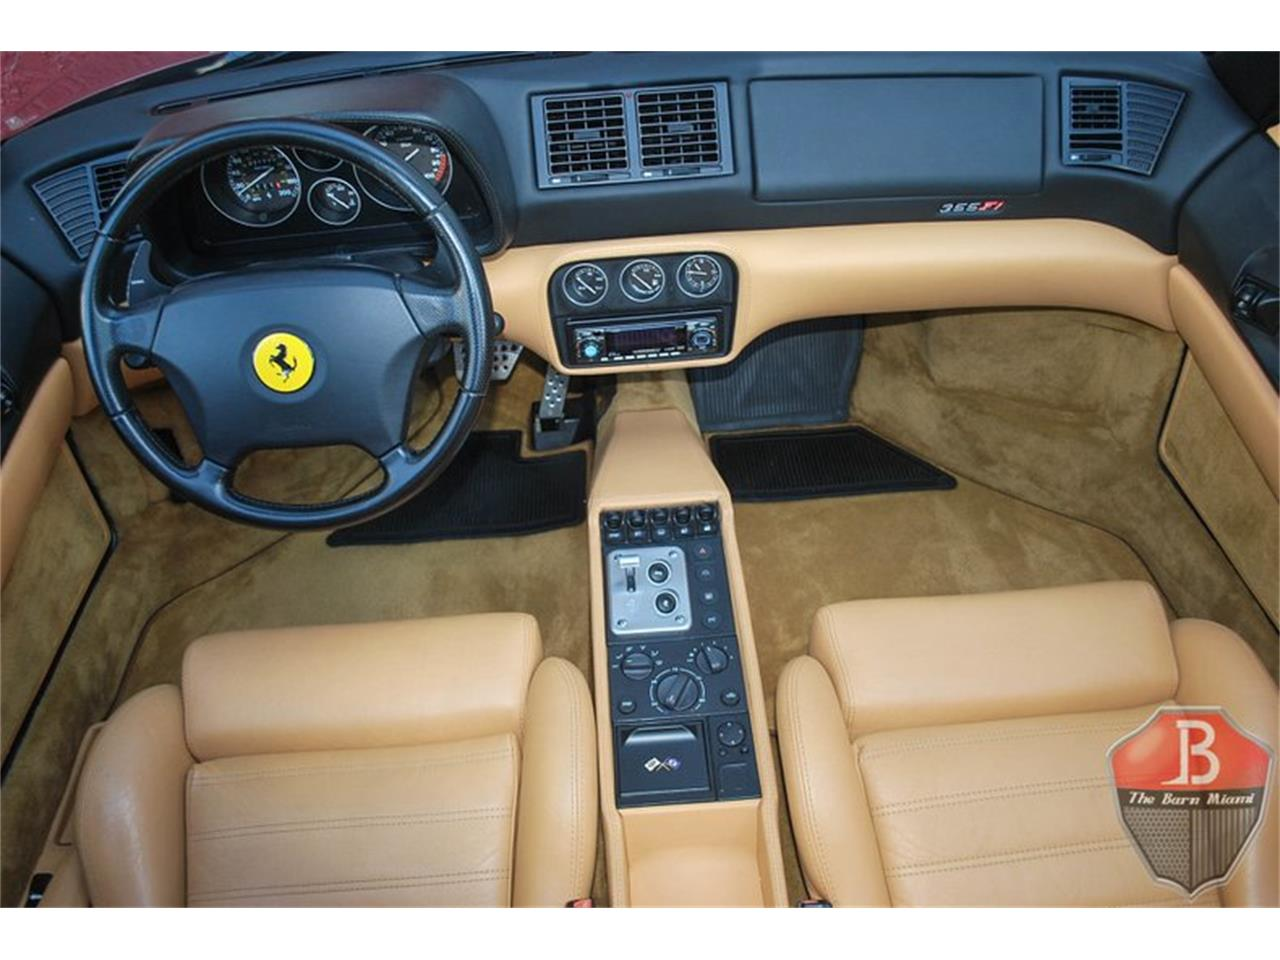 Large Picture of 1999 Ferrari F355 located in Miami Florida - $89,900.00 Offered by The Barn Miami - N6Y8